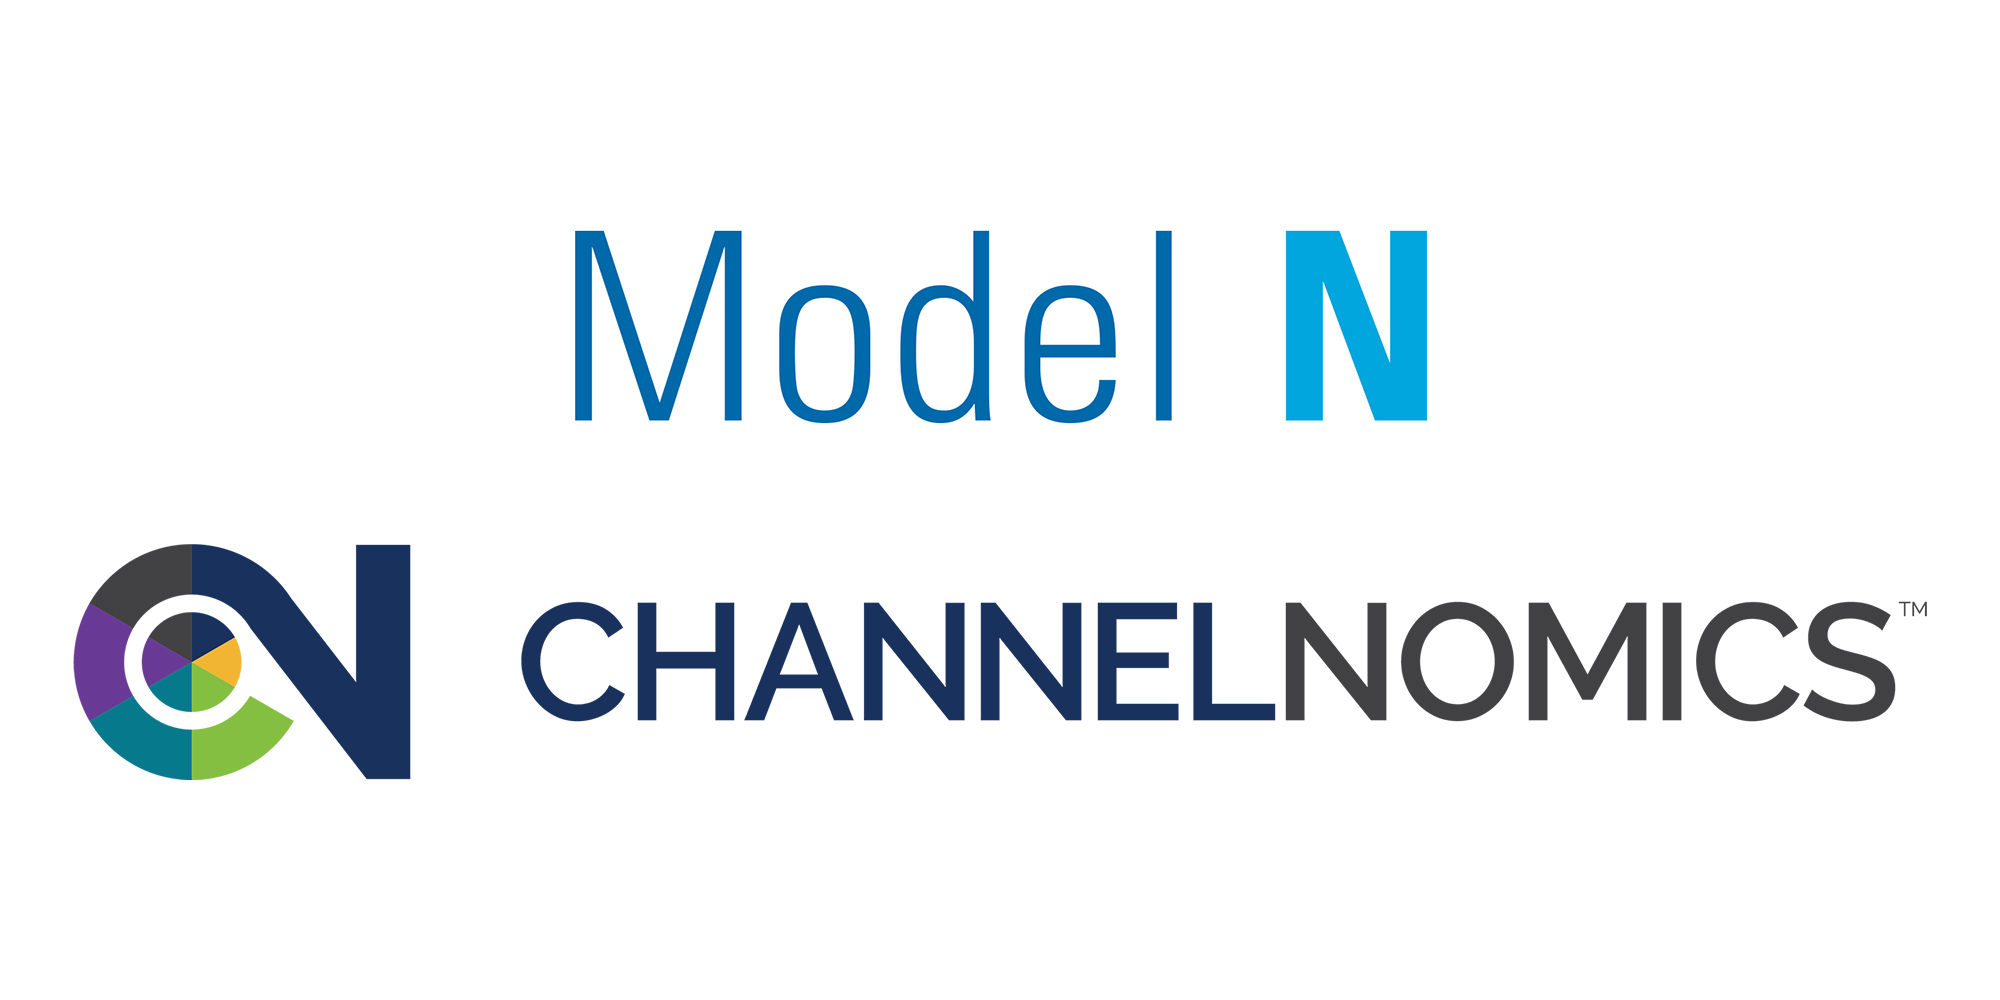 Model N, Channelnomics Partner To Drive Joint Customers' Channel Success